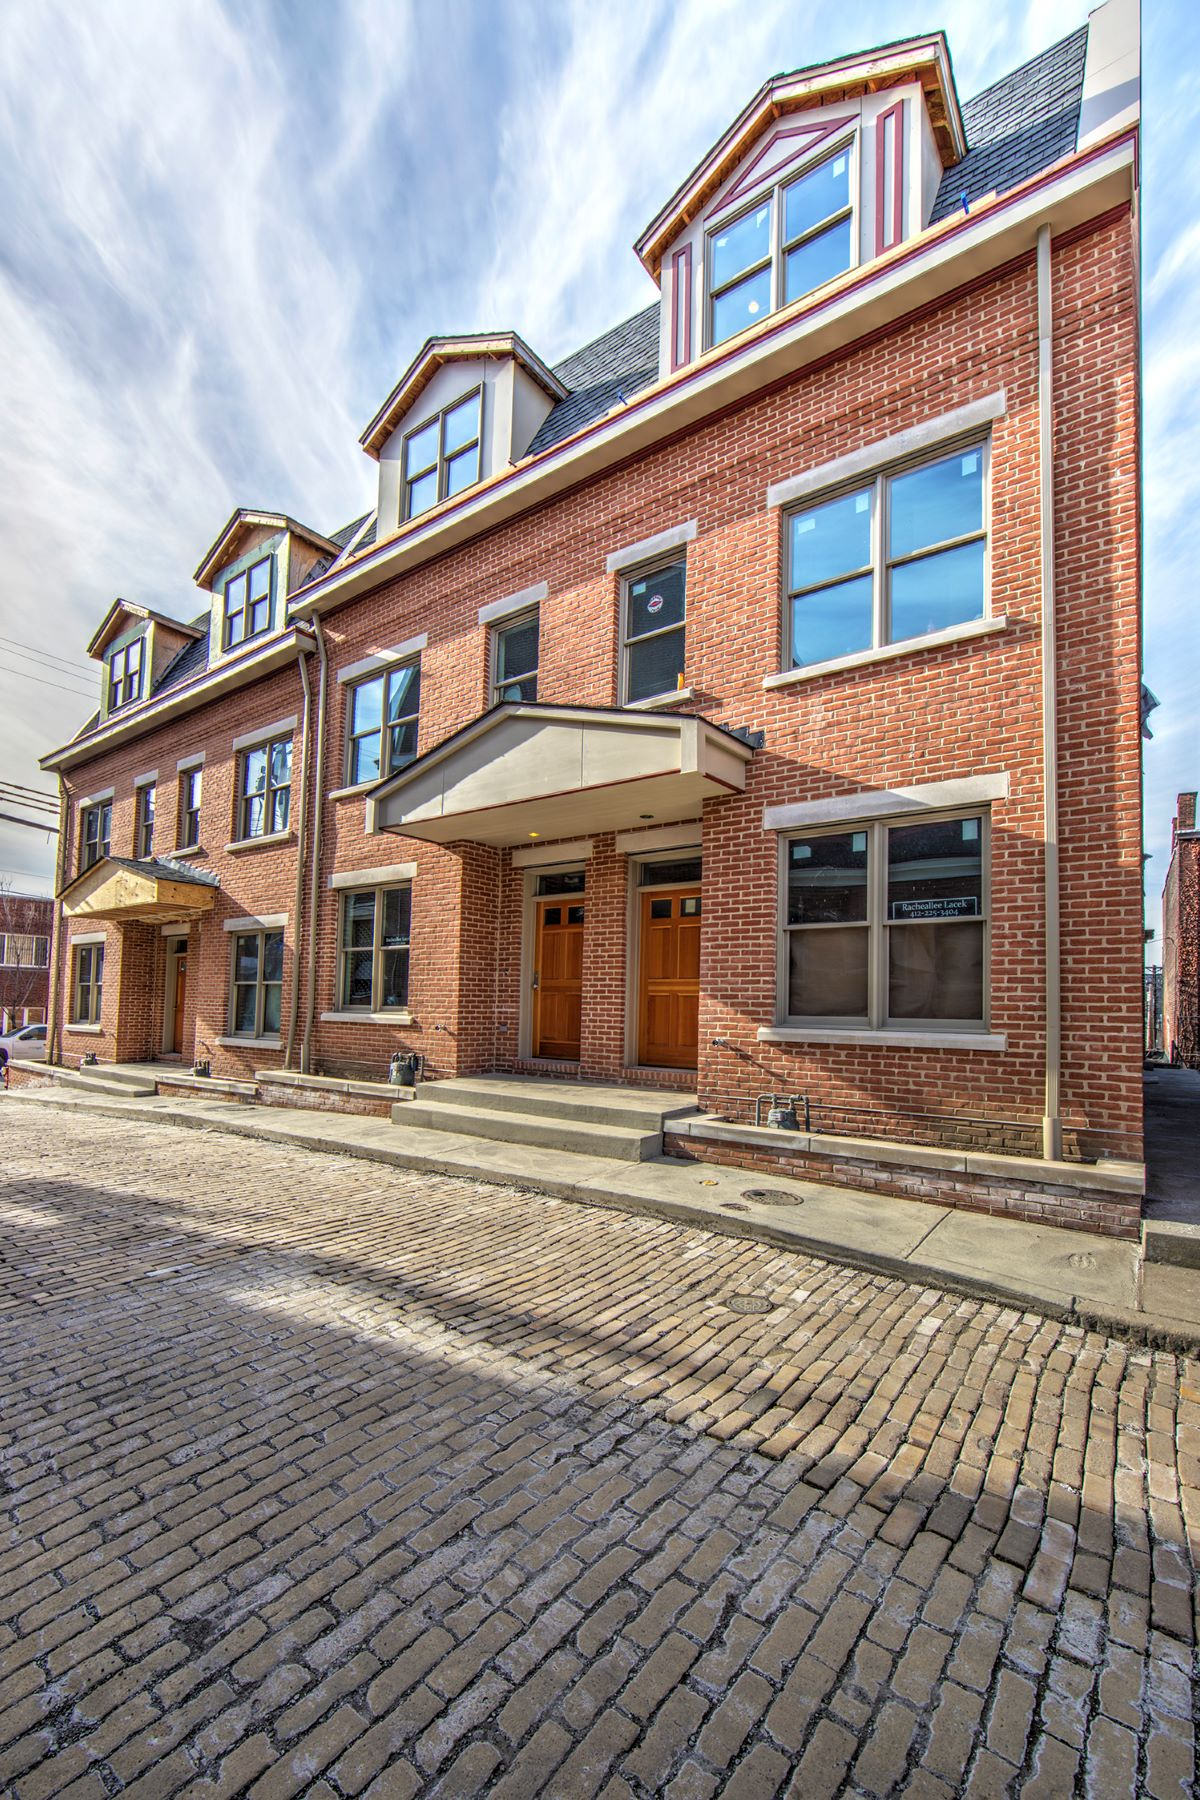 Townhouse for Sale at 4057 St. John's Way Pittsburgh, Pennsylvania 15201 United States